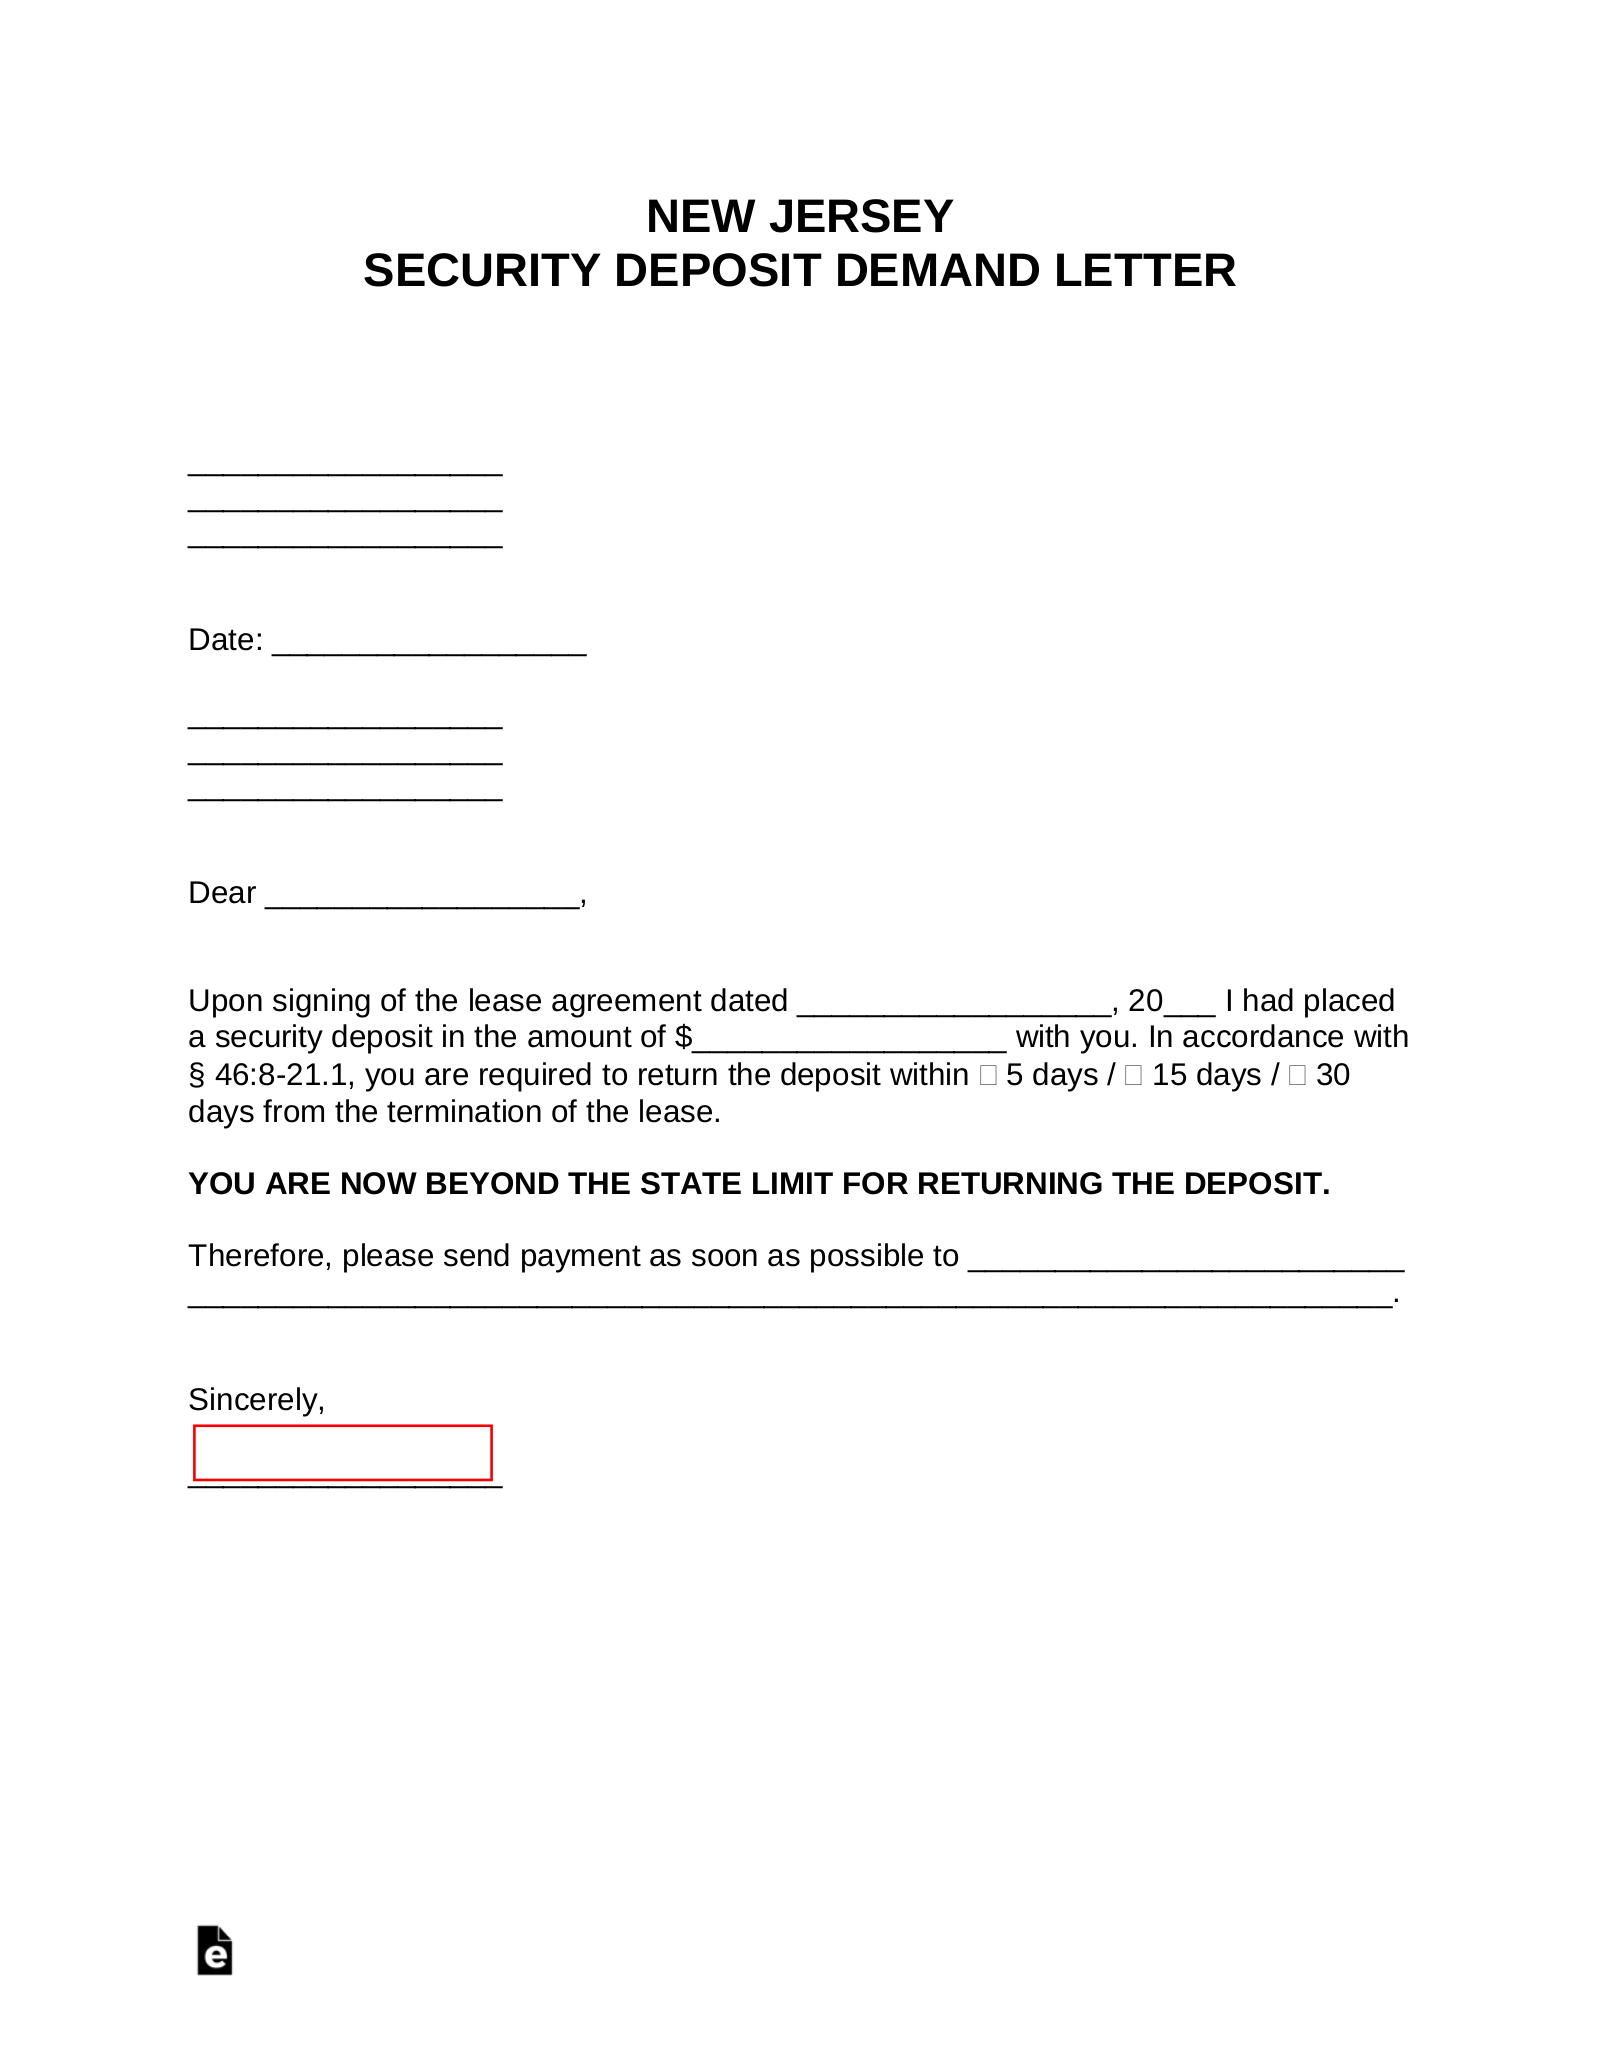 Landlord Letter To Tenant Regarding Security Deposit Return from eforms.com